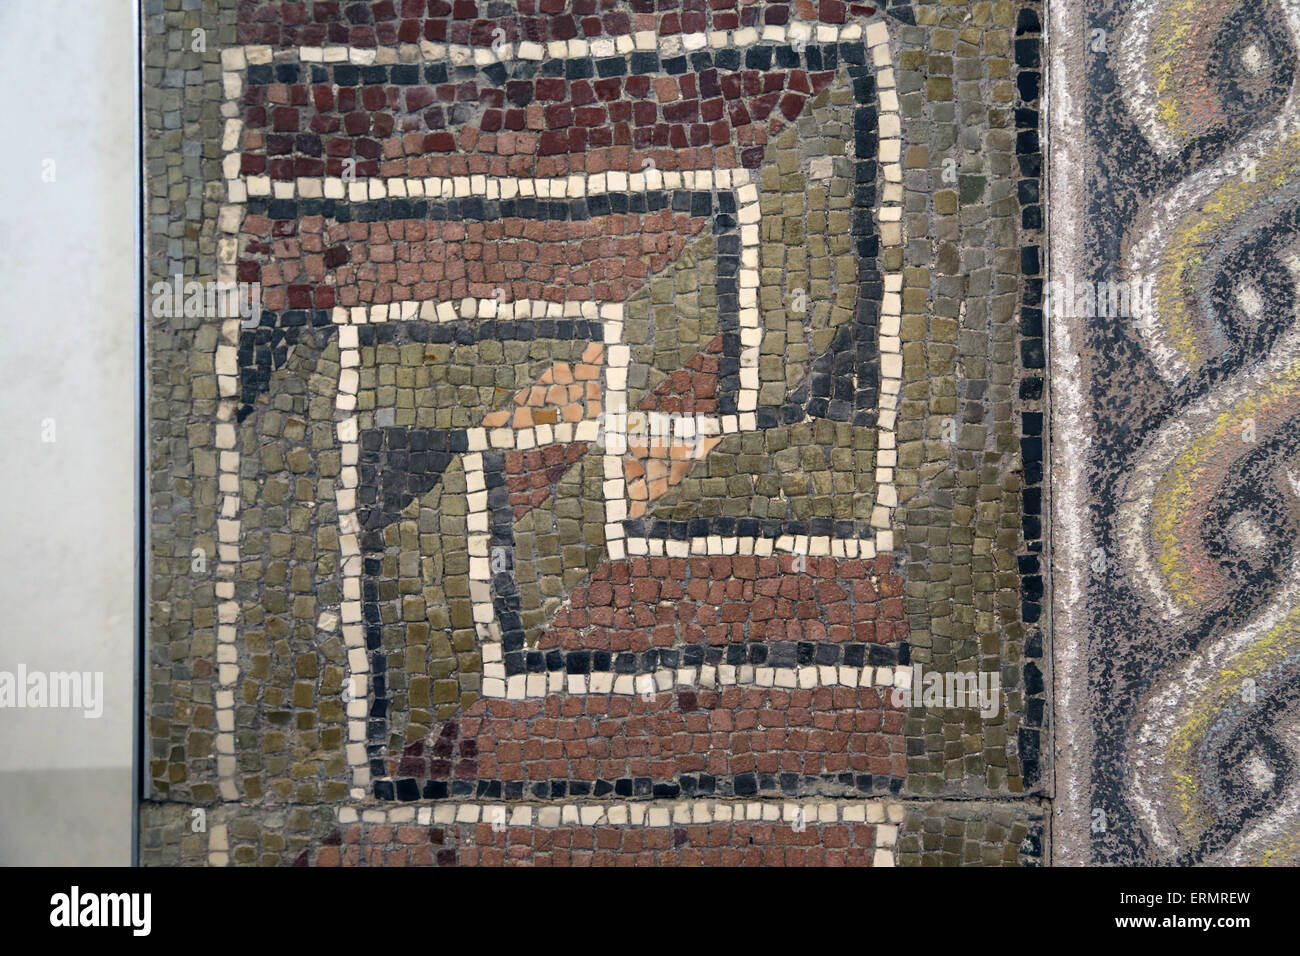 Roman mosaic. Geometric decoration in perspective. 1st century AD. Rome. National Roman Museum. Palace Massimo. - Stock Image